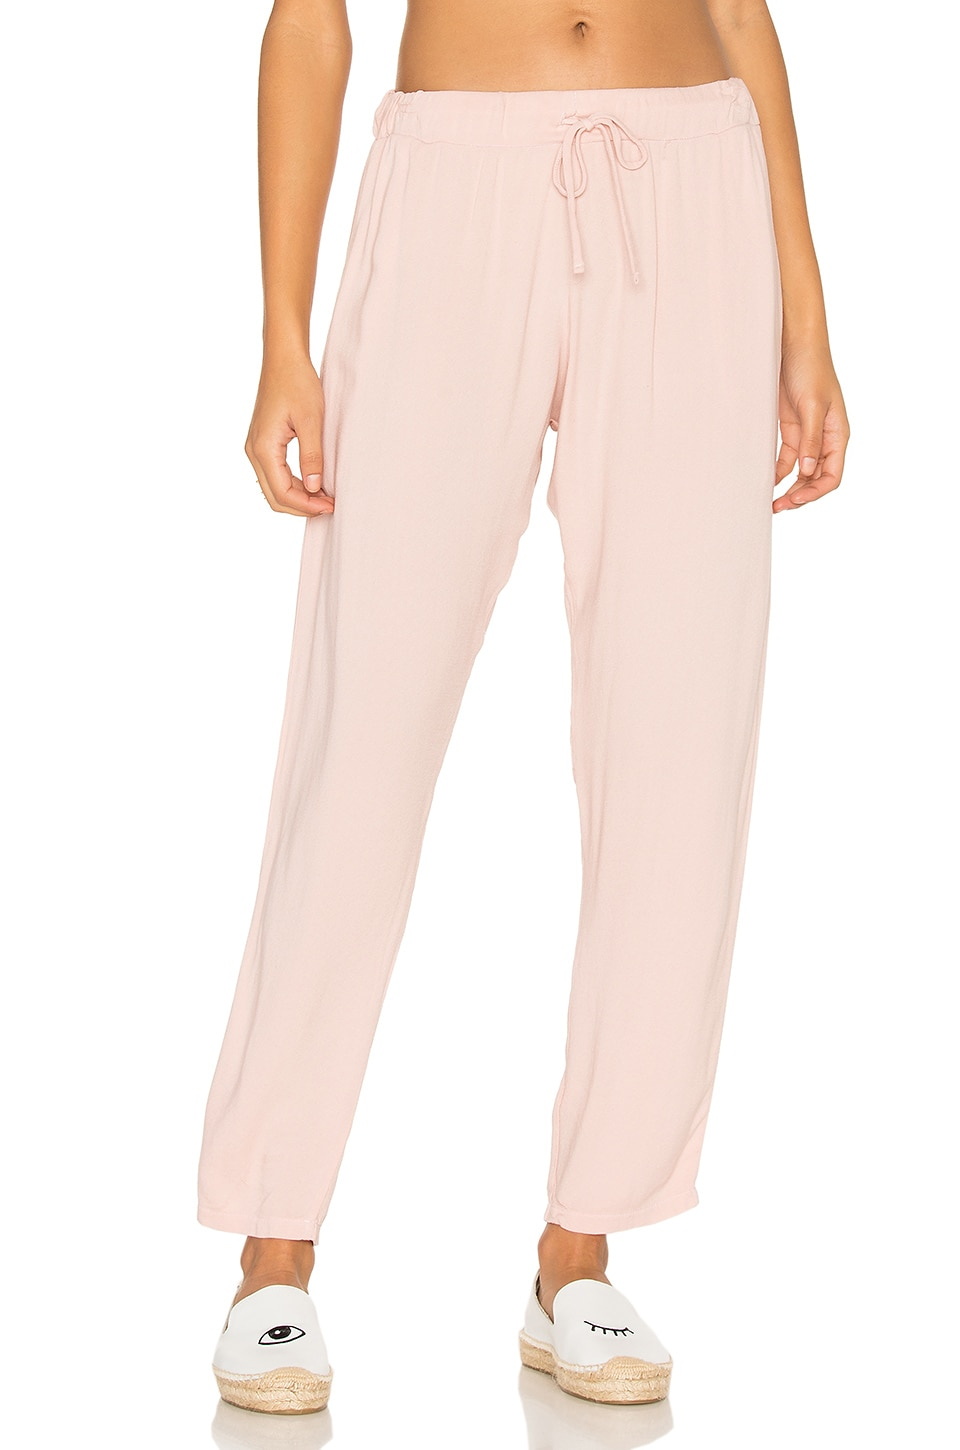 Astro Relaxed Trouser Pant by Michael Lauren